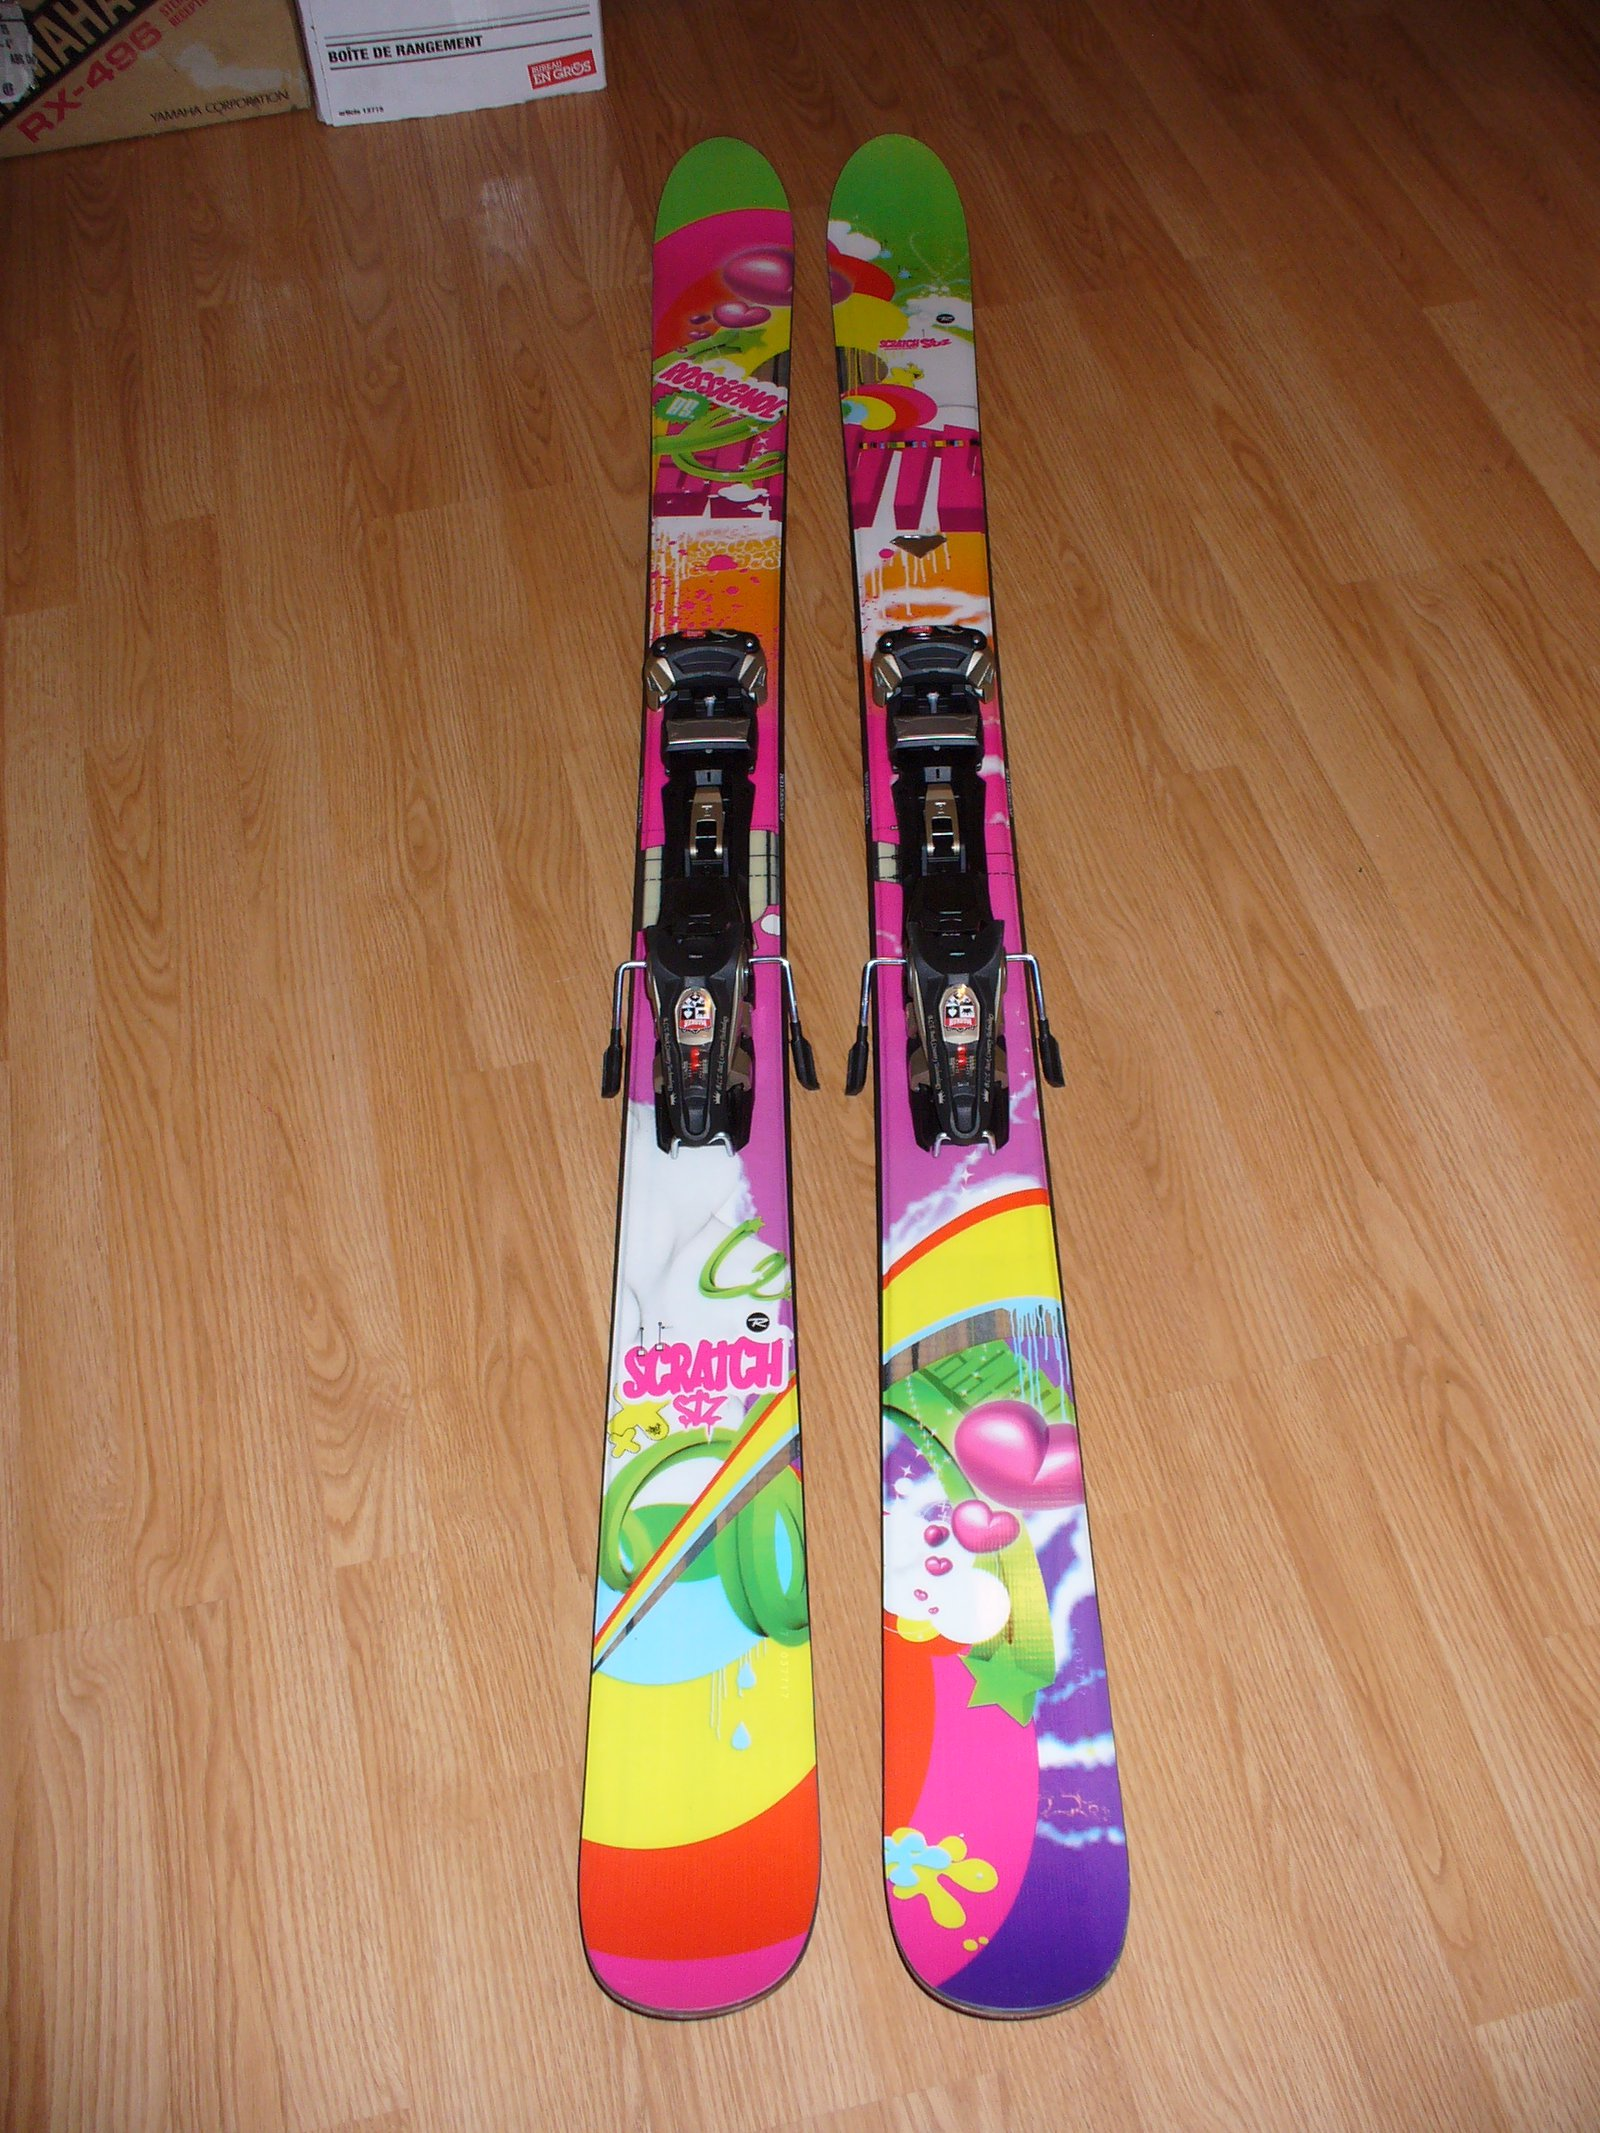 My pow skis this year